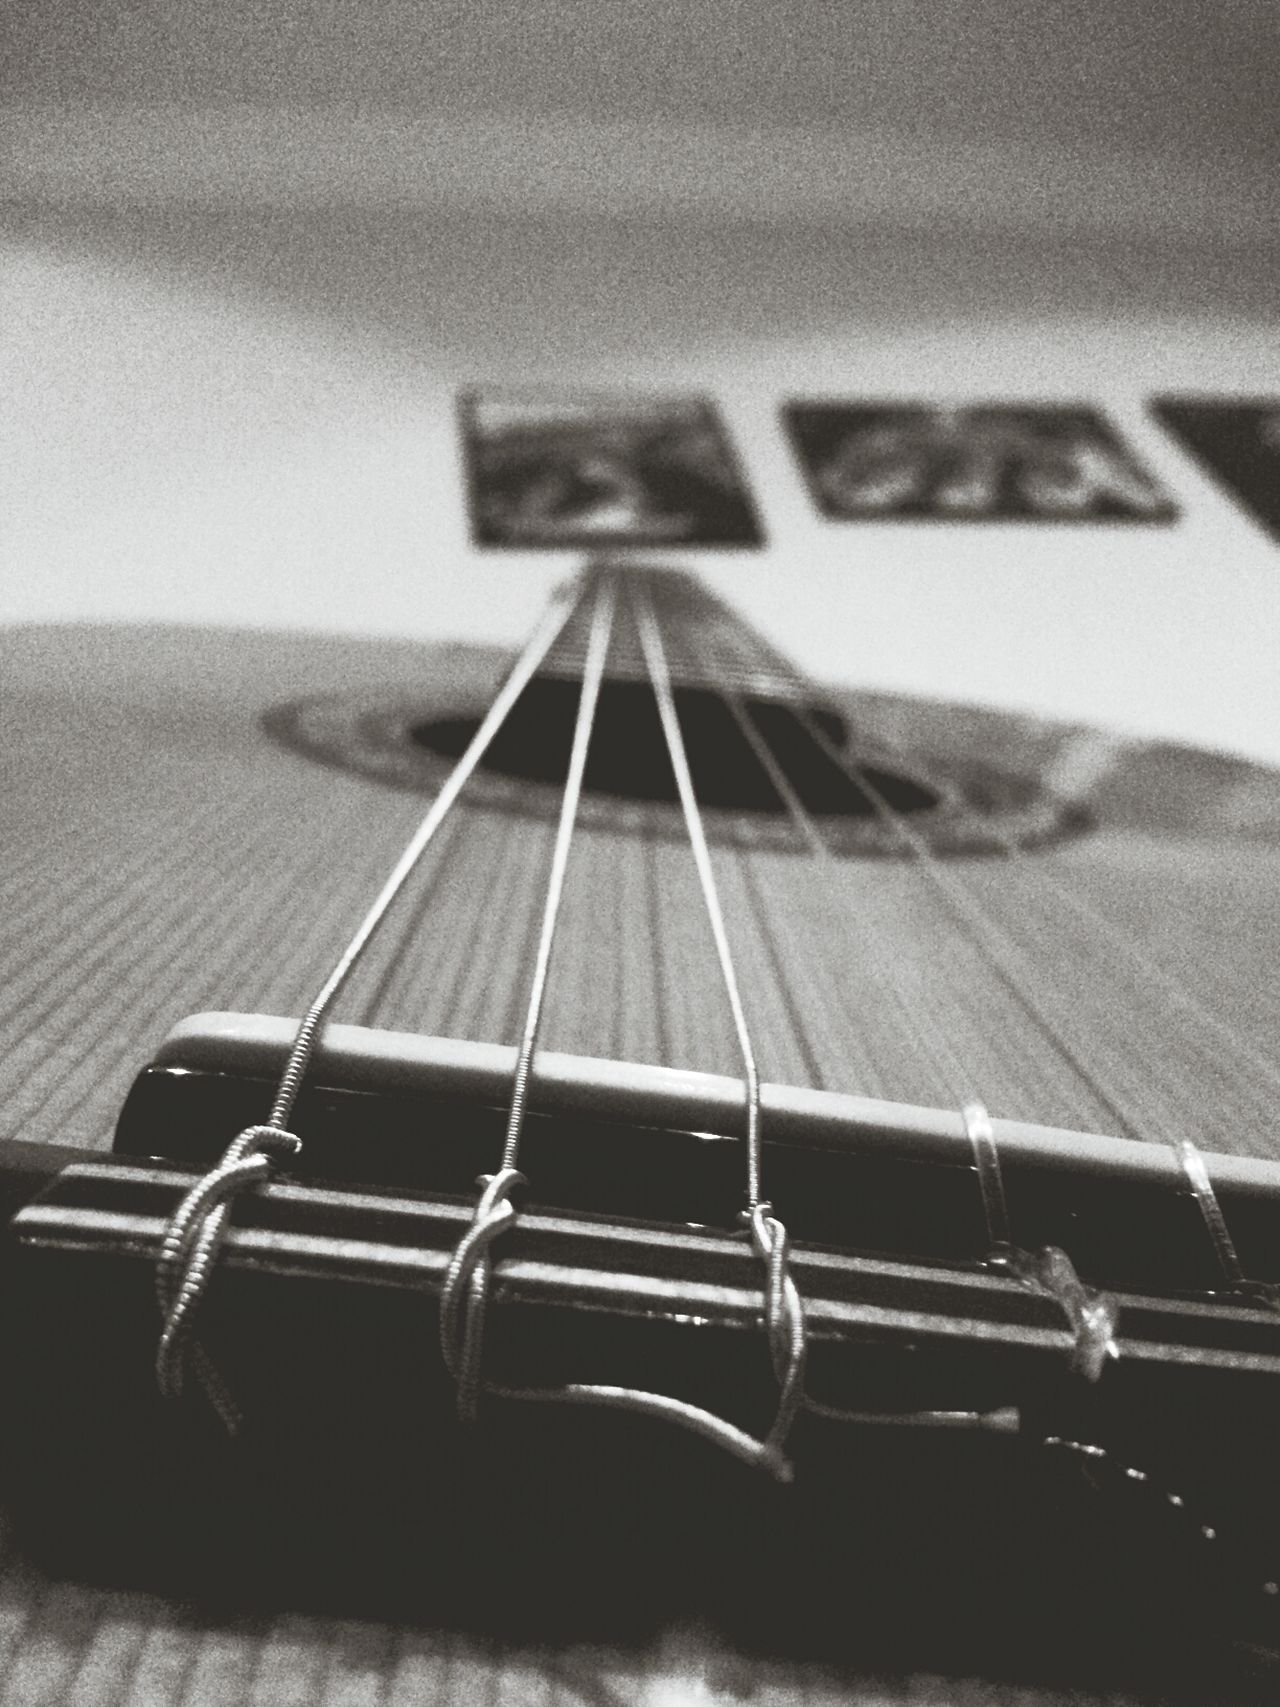 Beautiful stock photos of guitar, Arts Culture and Entertainment, Close-Up, Cropped, Detail